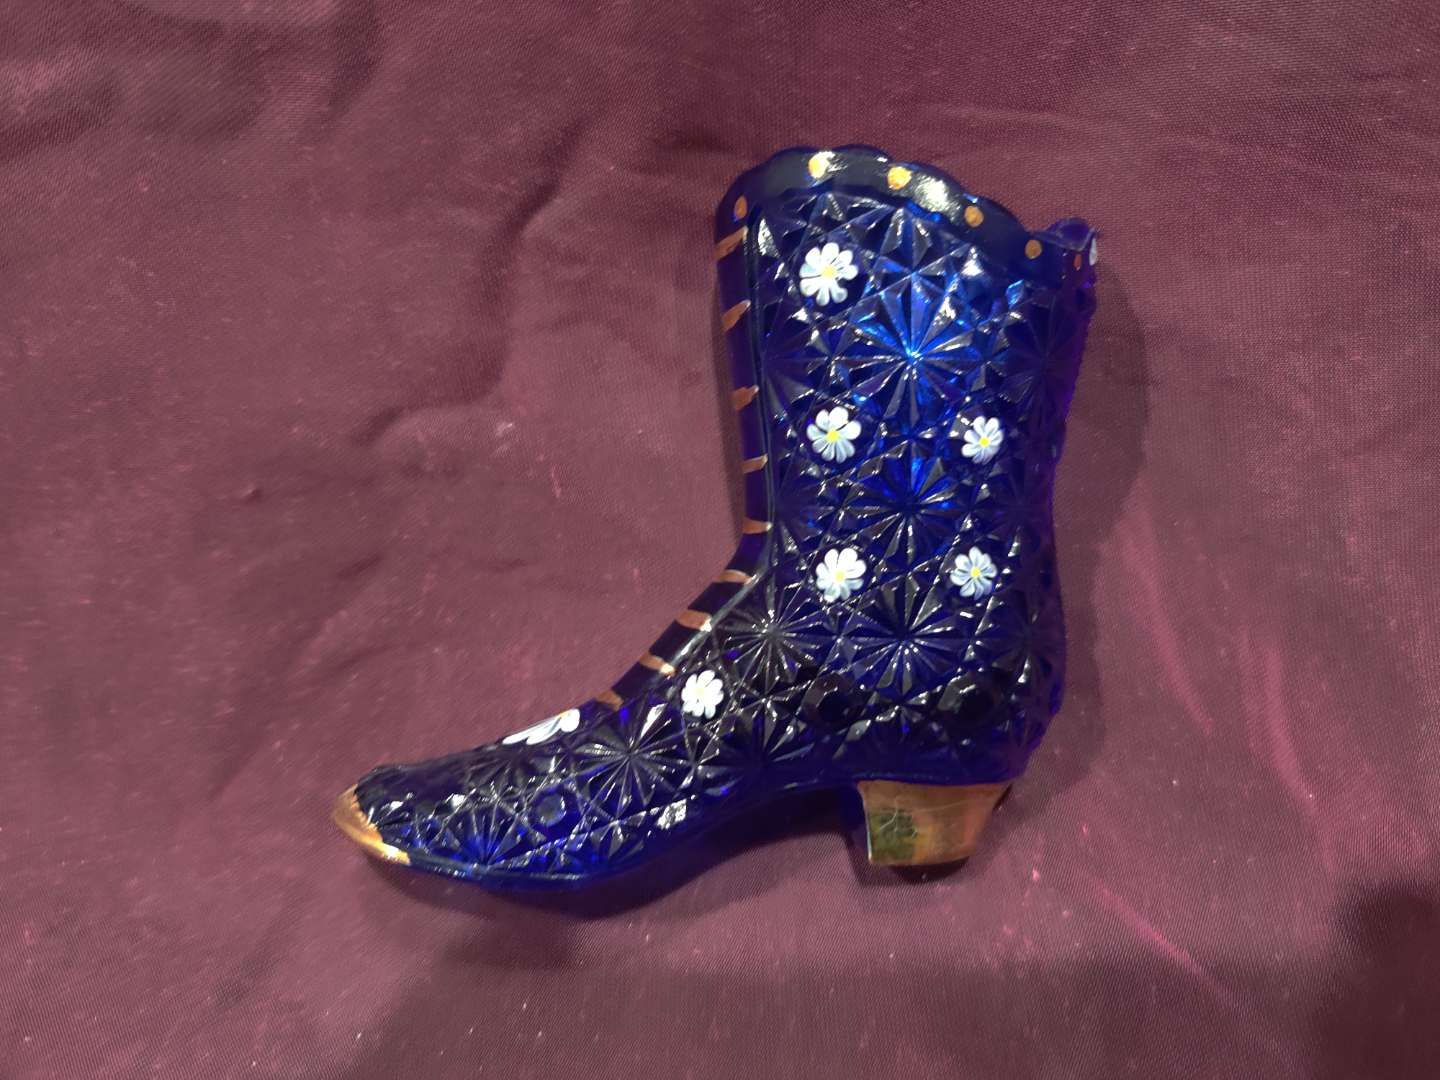 # 24 Fenton art glass tall blue boot hand-painted 4 in tall signed Dale Fenton